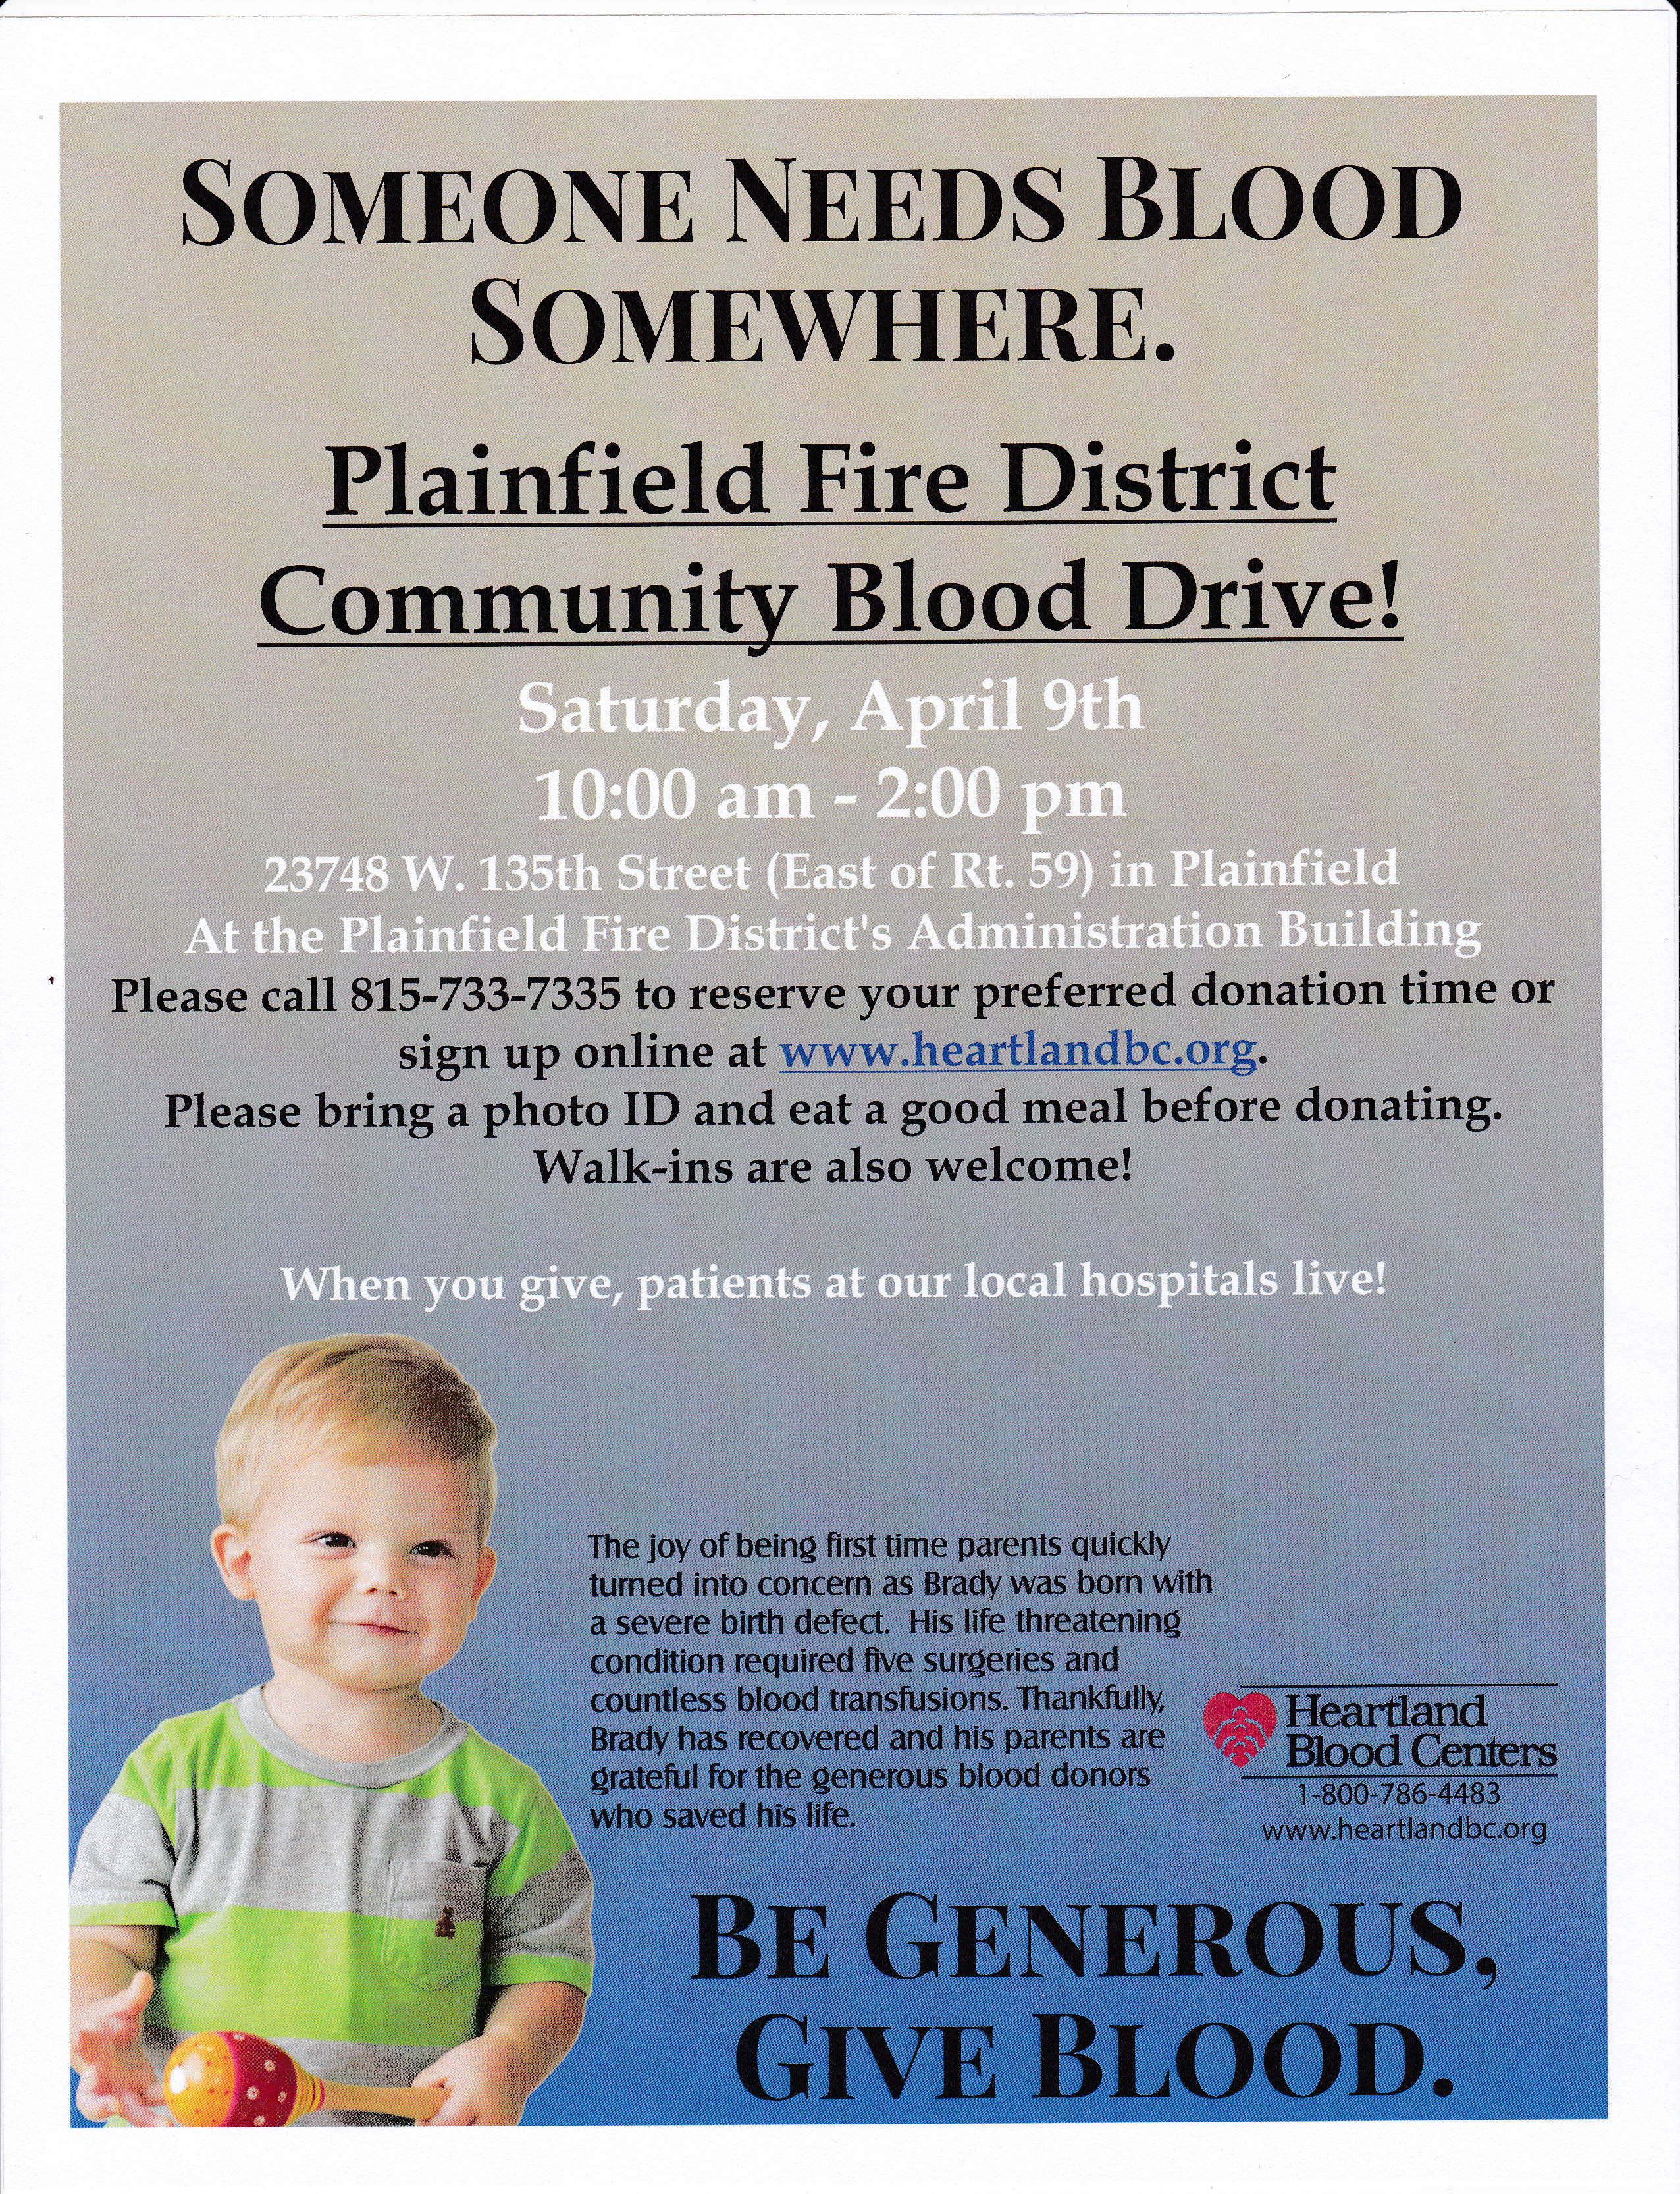 Plainfield Community Blood Drive Saturday April 9, 2016 from 10:00am - 2:00pm